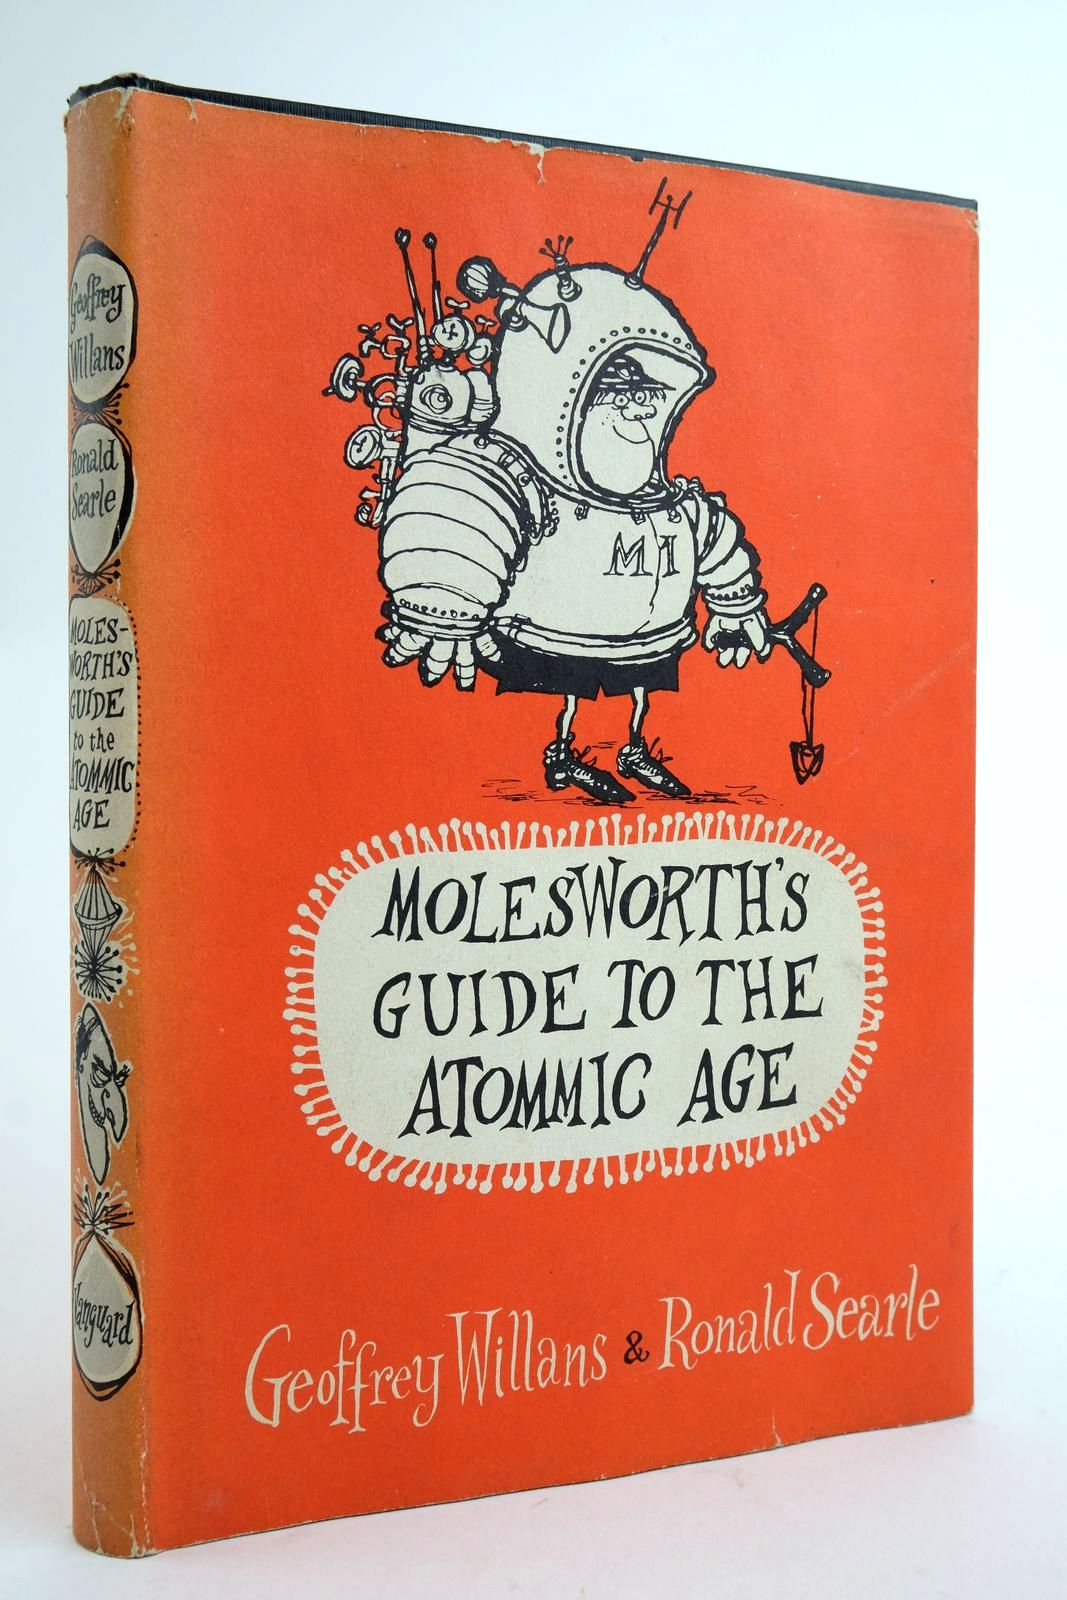 Photo of MOLESWORTH'S GUIDE TO THE ATOMMIC AGE- Stock Number: 2135457